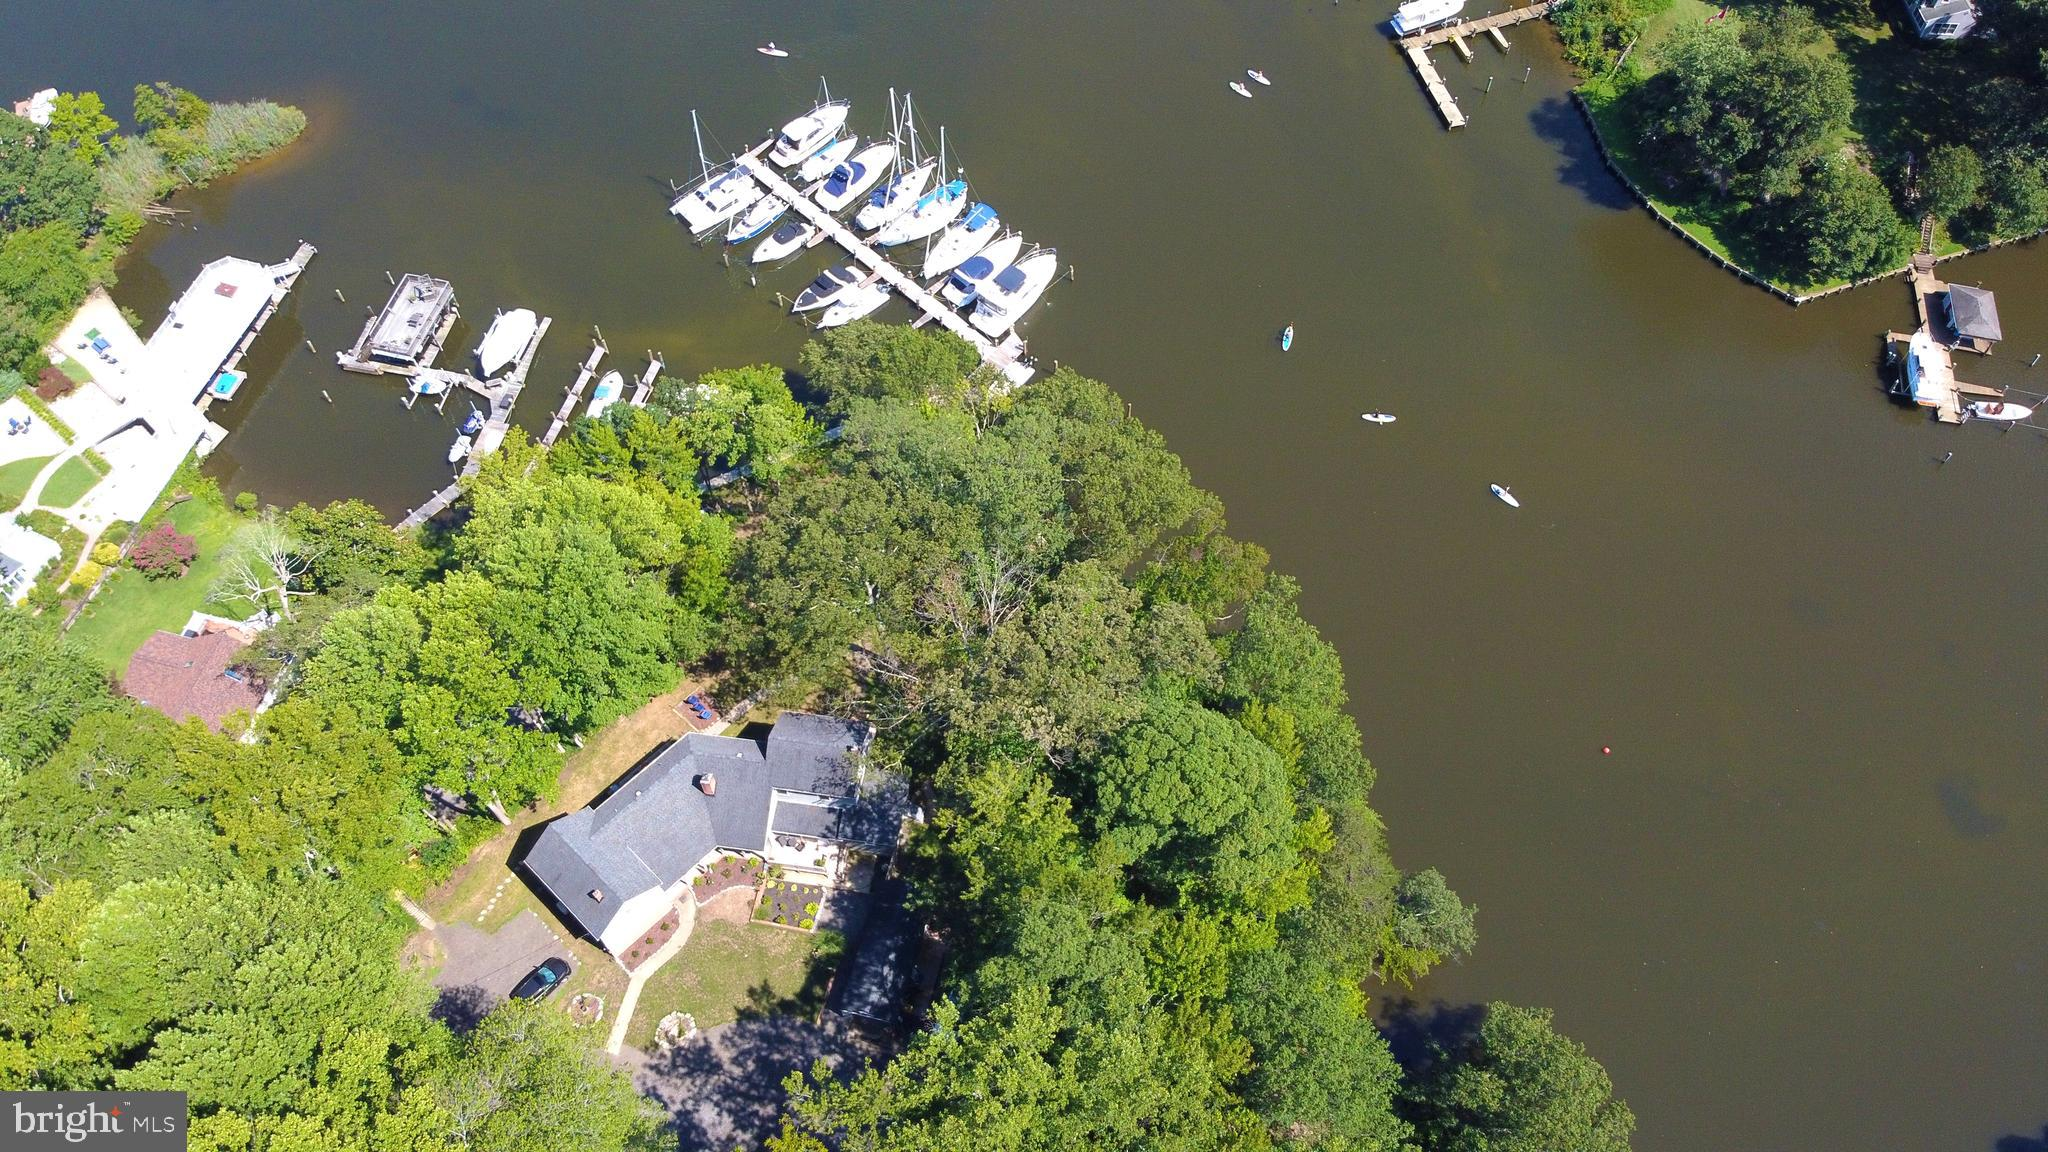 Rare opportunity to own this private, boutique marina with 23 deep water slips updated residence and